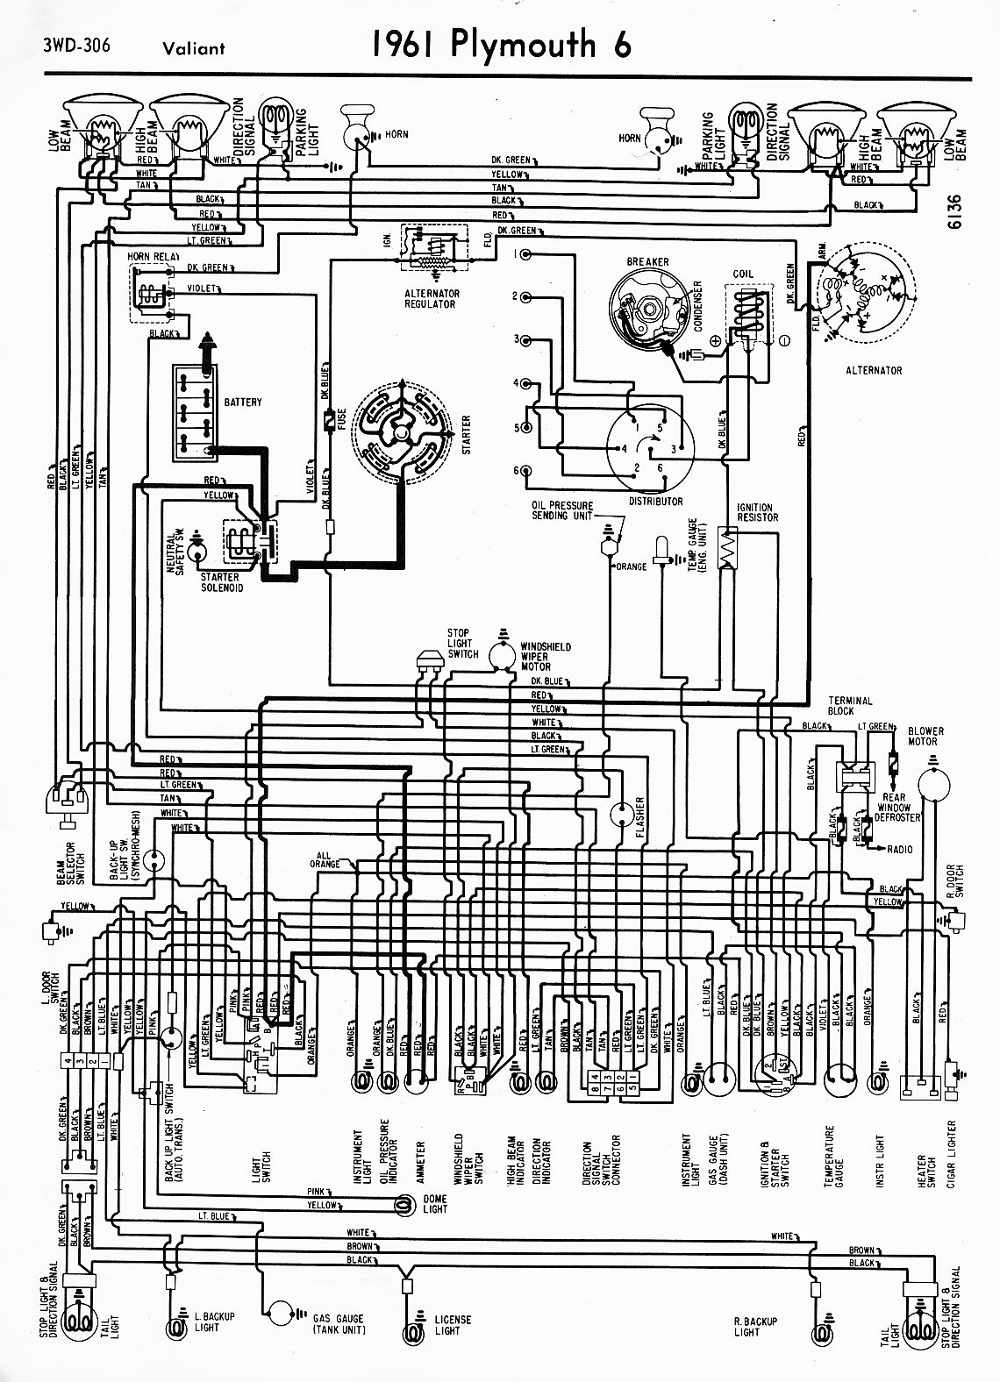 1966 plymouth satellite wiring diagram wiring diagram blog 1966 plymouth satellite wiring diagram [ 1000 x 1382 Pixel ]